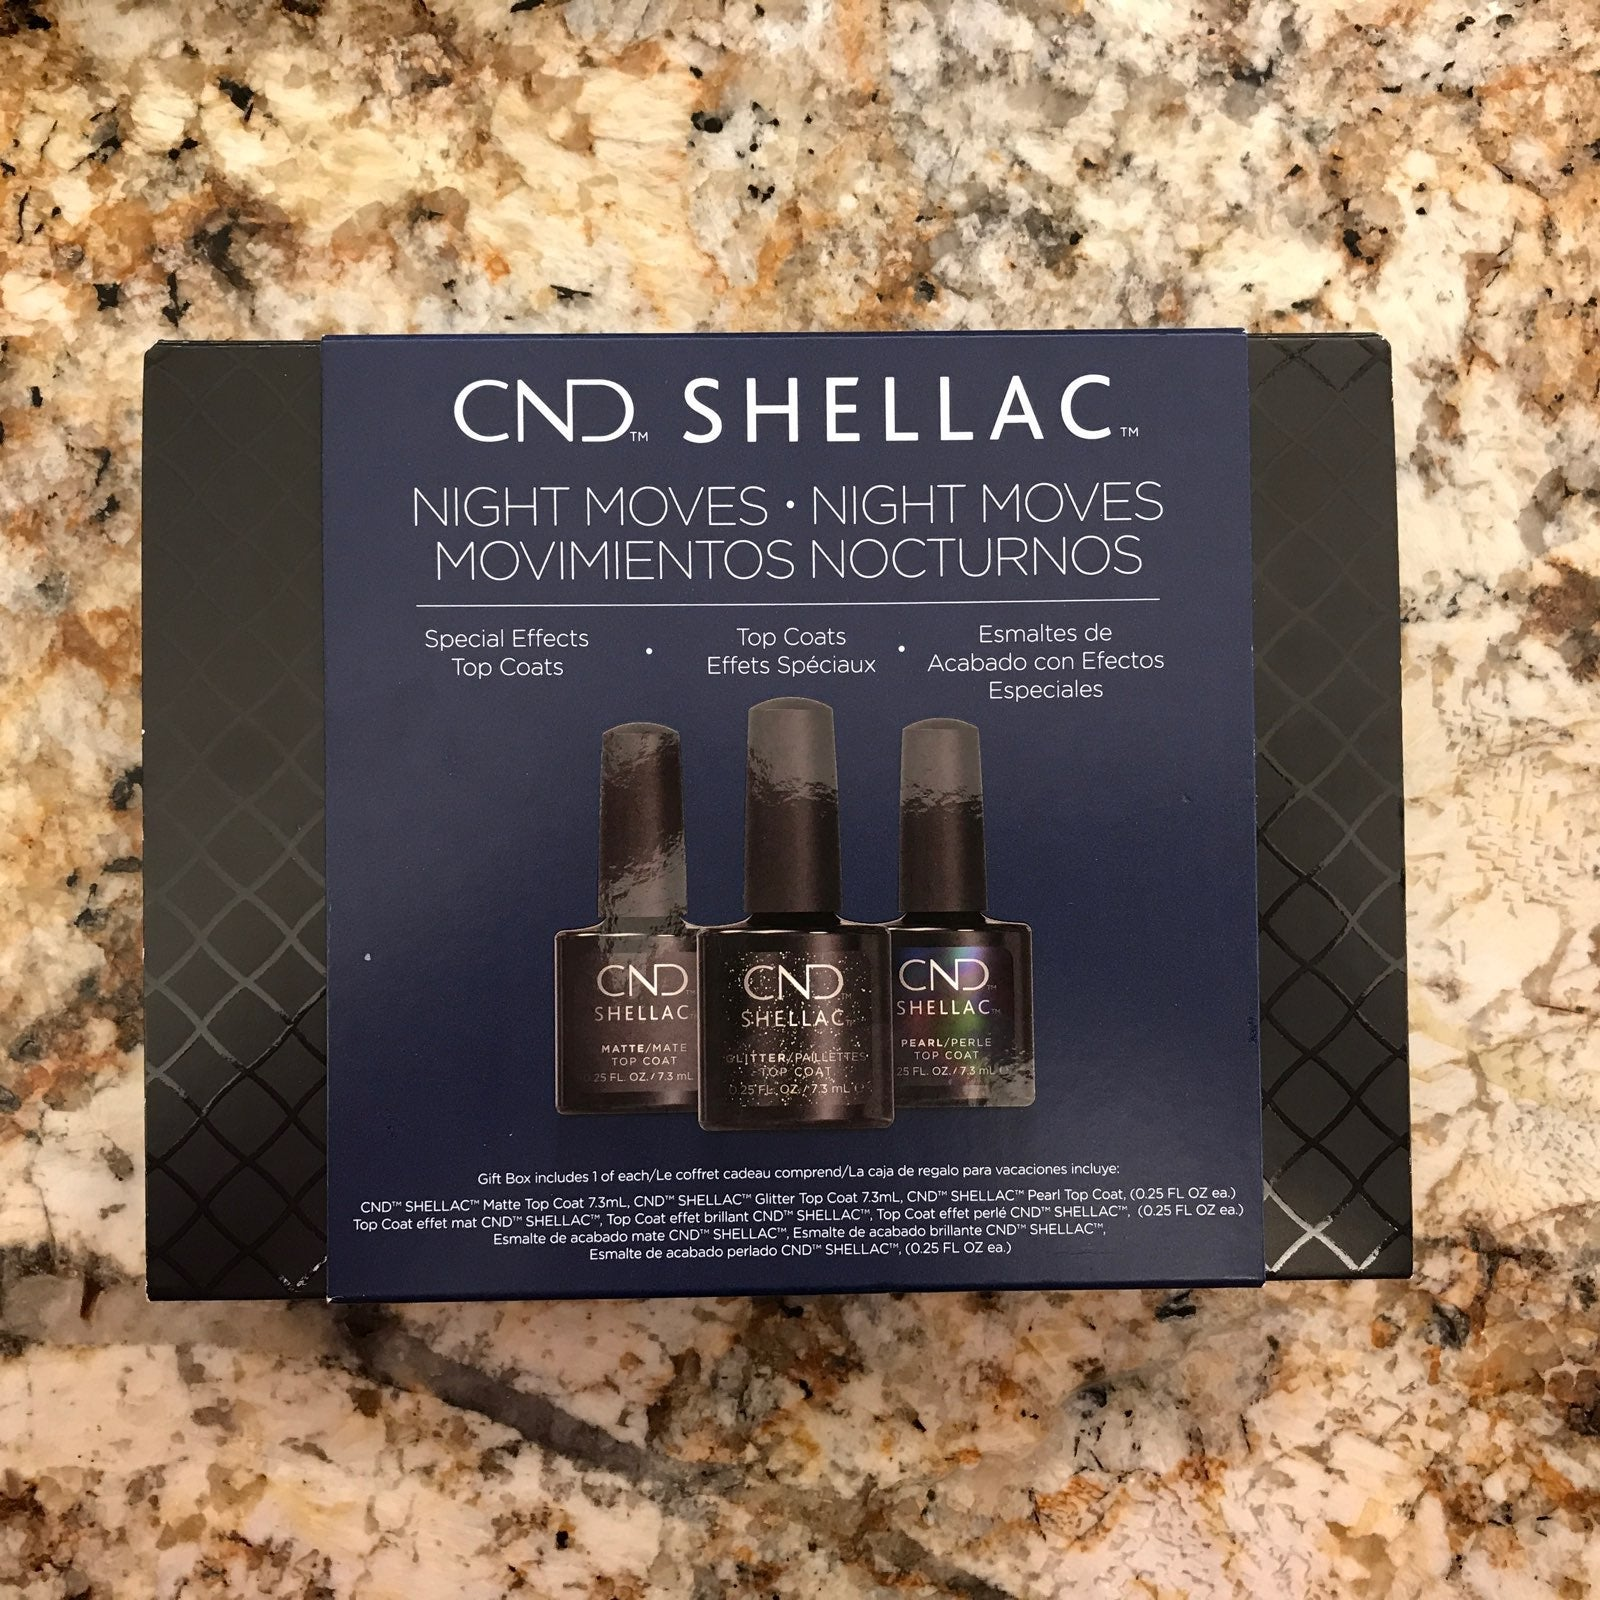 CND Night Moves Special Effects top coat